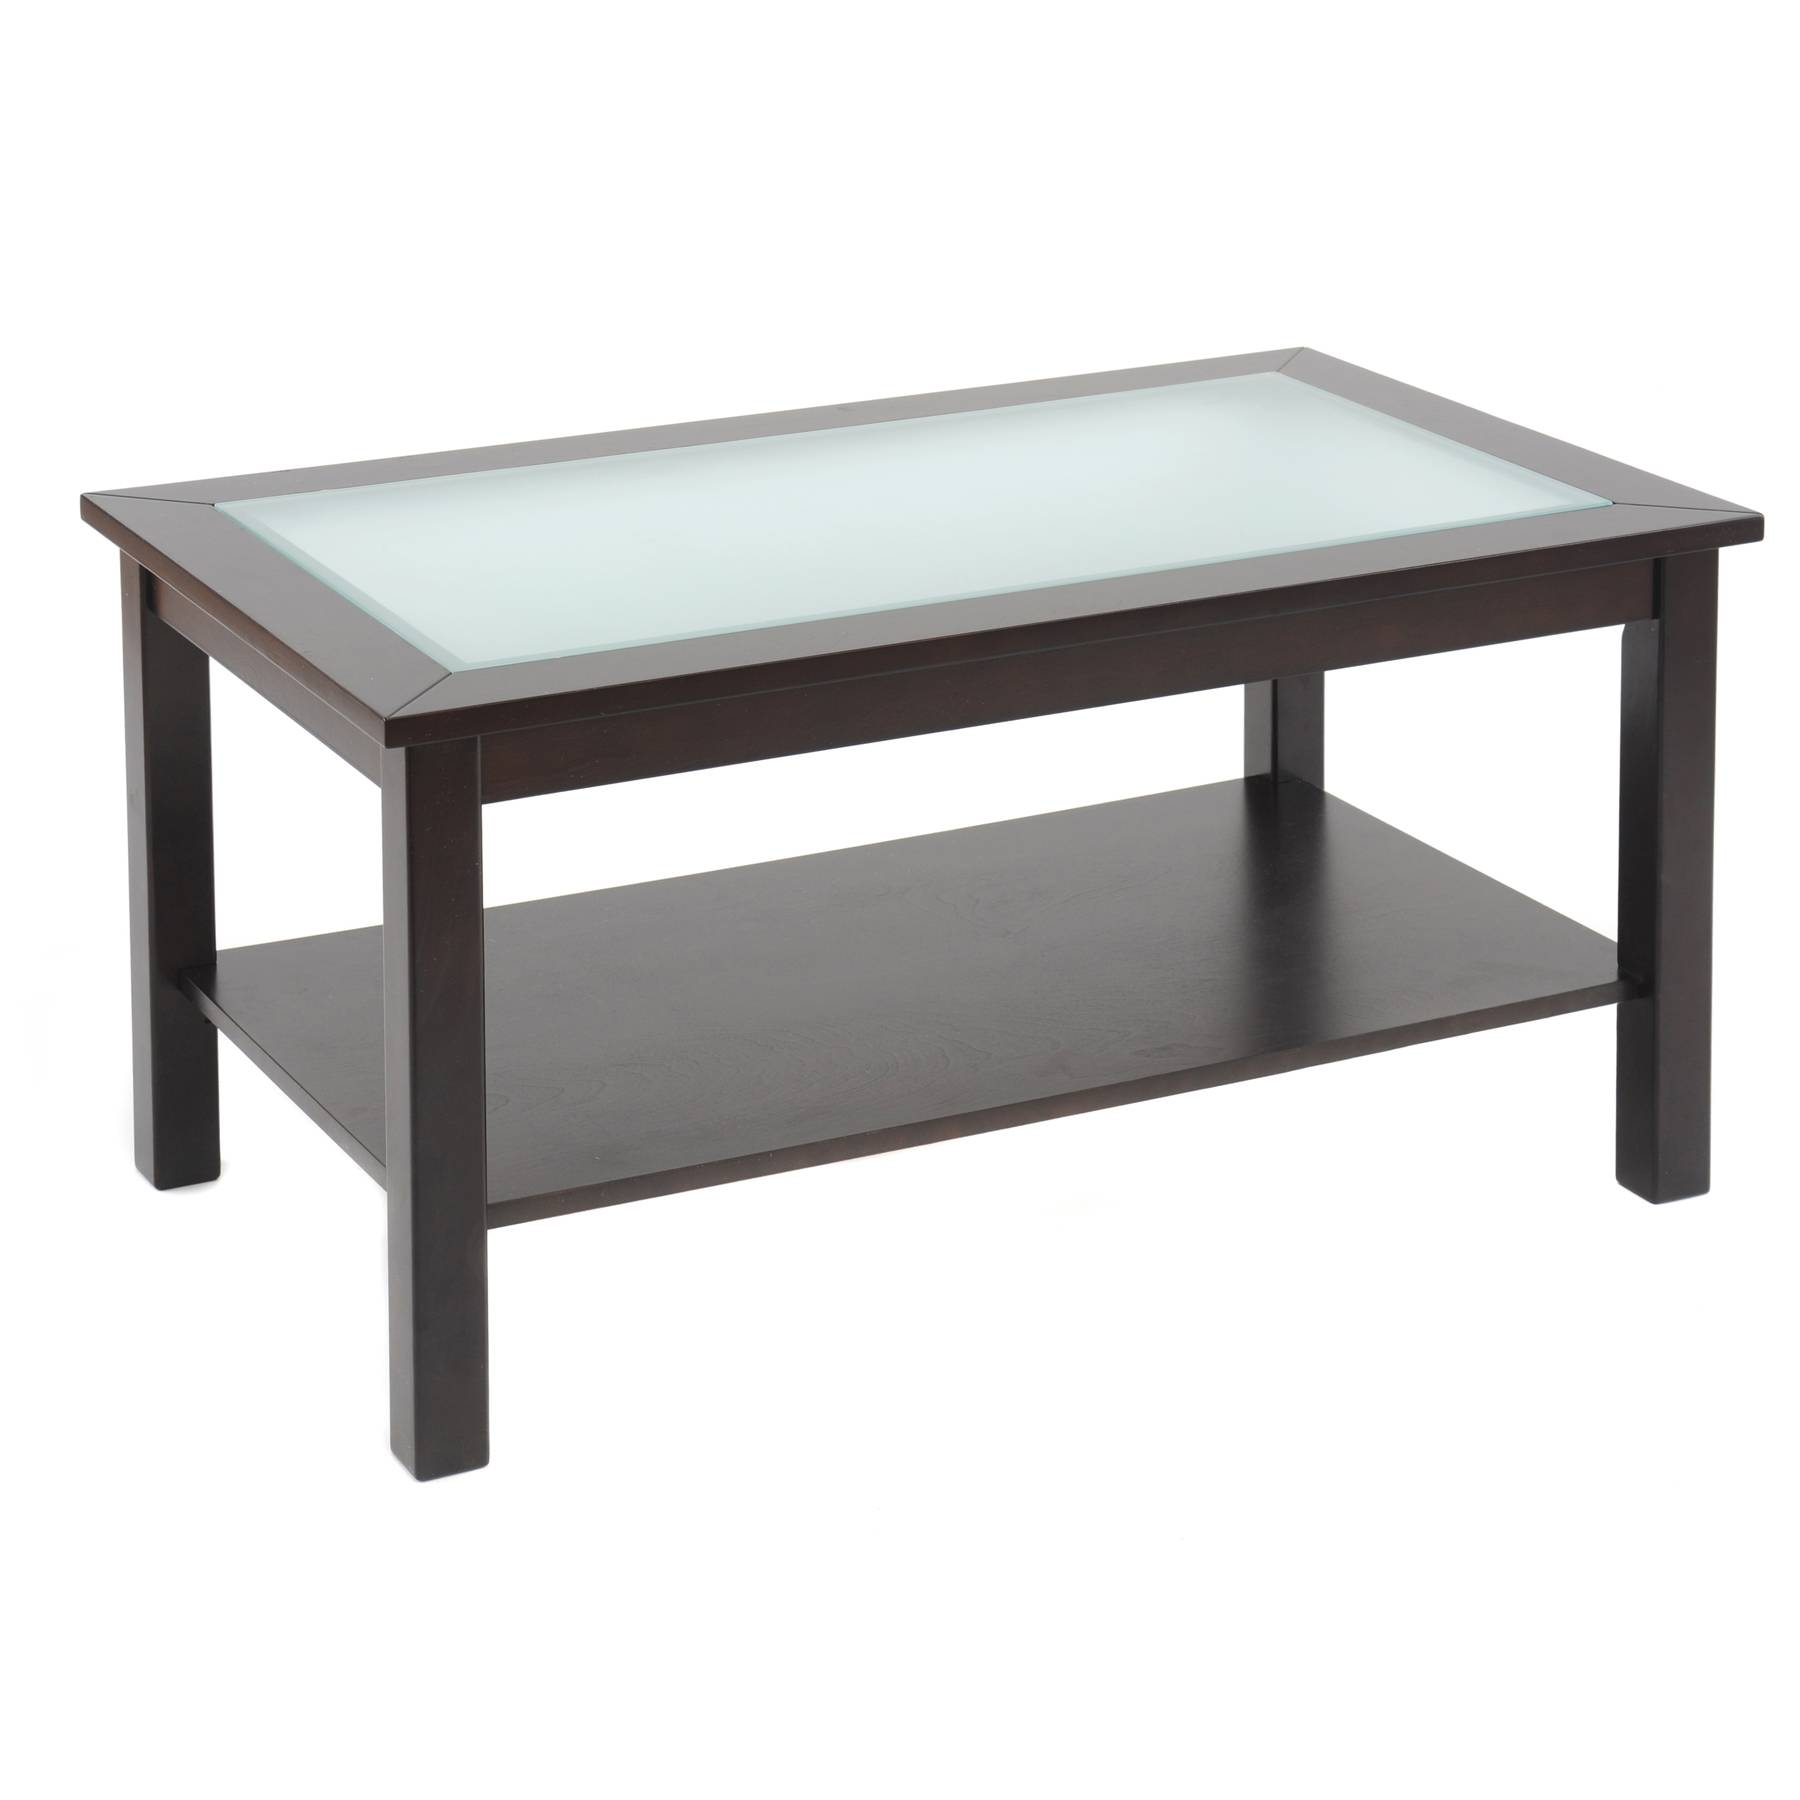 Coffee Table: Chic Glass Modern Coffee Table Ideas Trunk Coffee inside Low Rectangular Coffee Tables (Image 4 of 30)